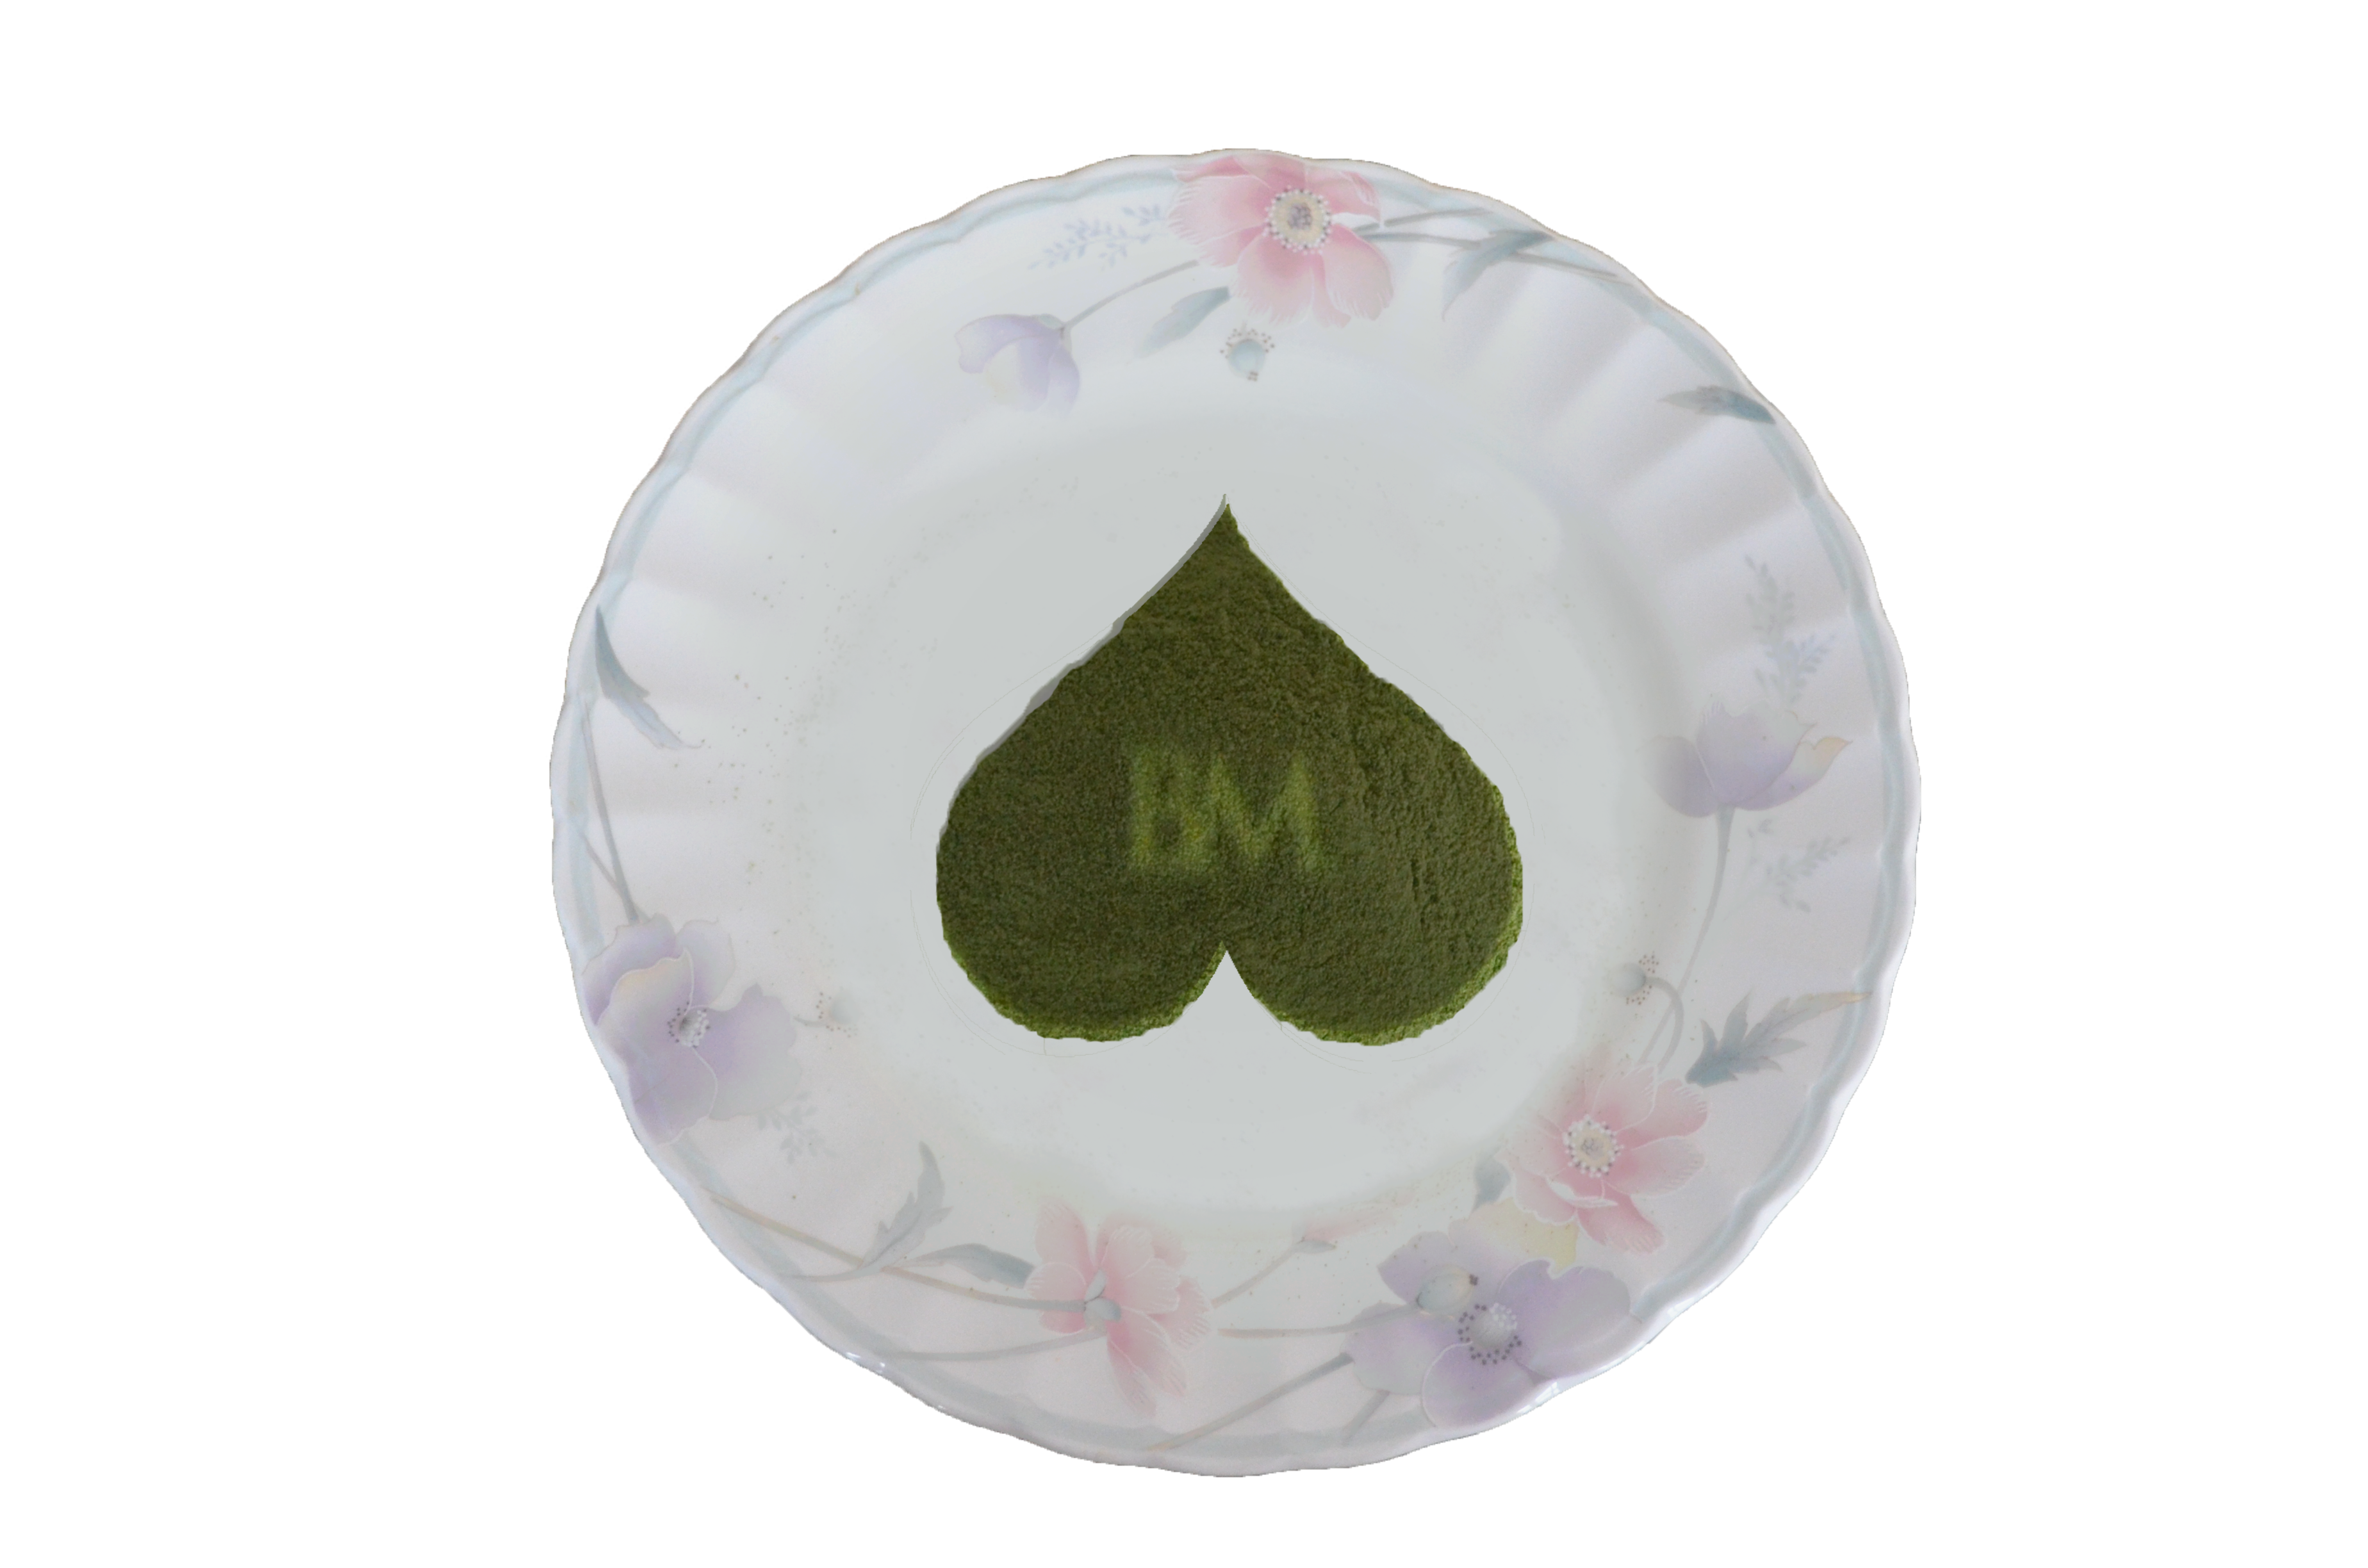 bm-matcha-heart-on-plate.png